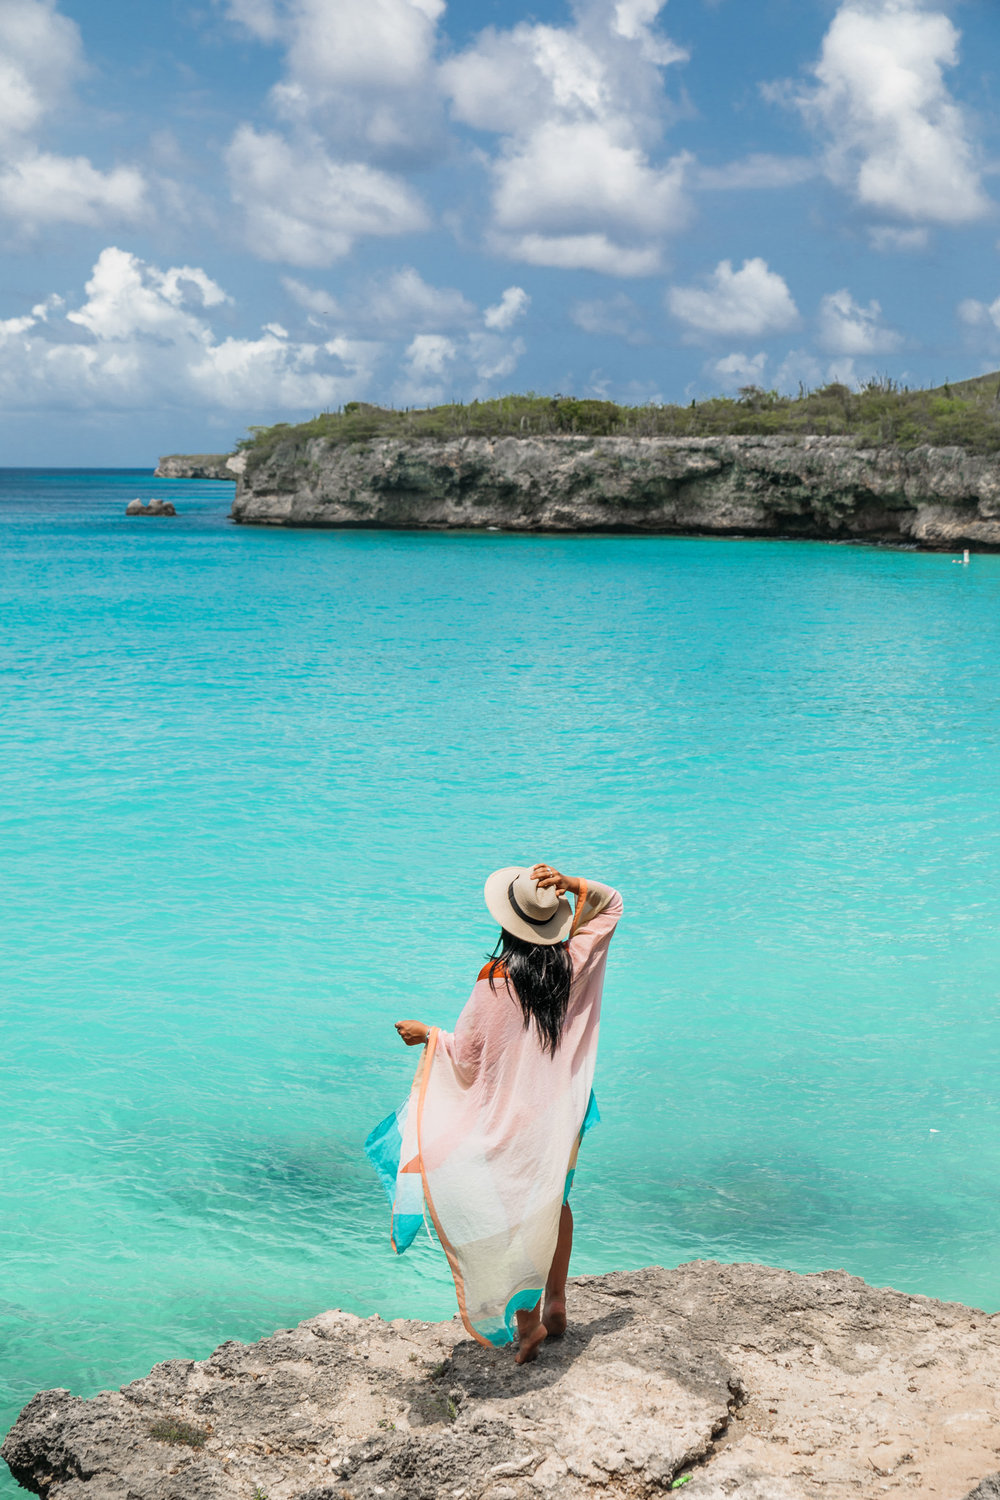 Playa Knip on Curaçao // 20 Photos to Show You Why Curaçao Needs to Be On Your Travel Radar // www.readysetjetset.net #readysetjetset #curacao #caribbean #beach #ocean #paradise #travel